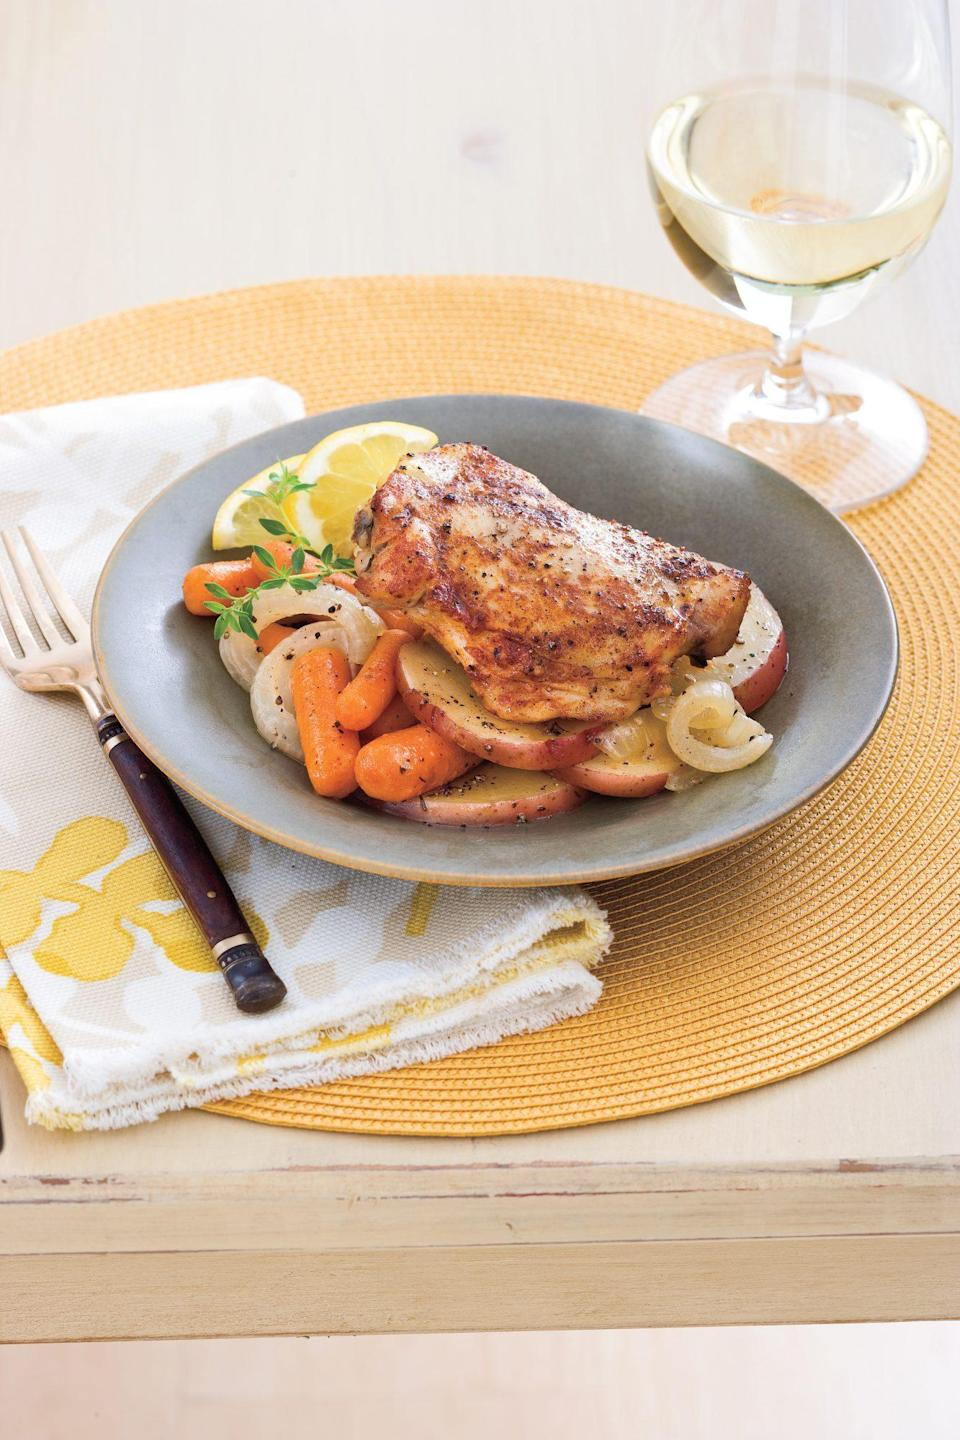 """<p><strong>Recipe: <a href=""""https://www.southernliving.com/recipes/crockpot-chicken-thighs-carrots-potatoes"""" rel=""""nofollow noopener"""" target=""""_blank"""" data-ylk=""""slk:Chicken Thighs with Carrots and Potatoes"""" class=""""link rapid-noclick-resp"""">Chicken Thighs with Carrots and Potatoes</a></strong></p> <p>This recipe allows you to cook your main and sides all at one time—and is much more budget-friendly that taking the whole family out to a restaurant after church.</p>"""